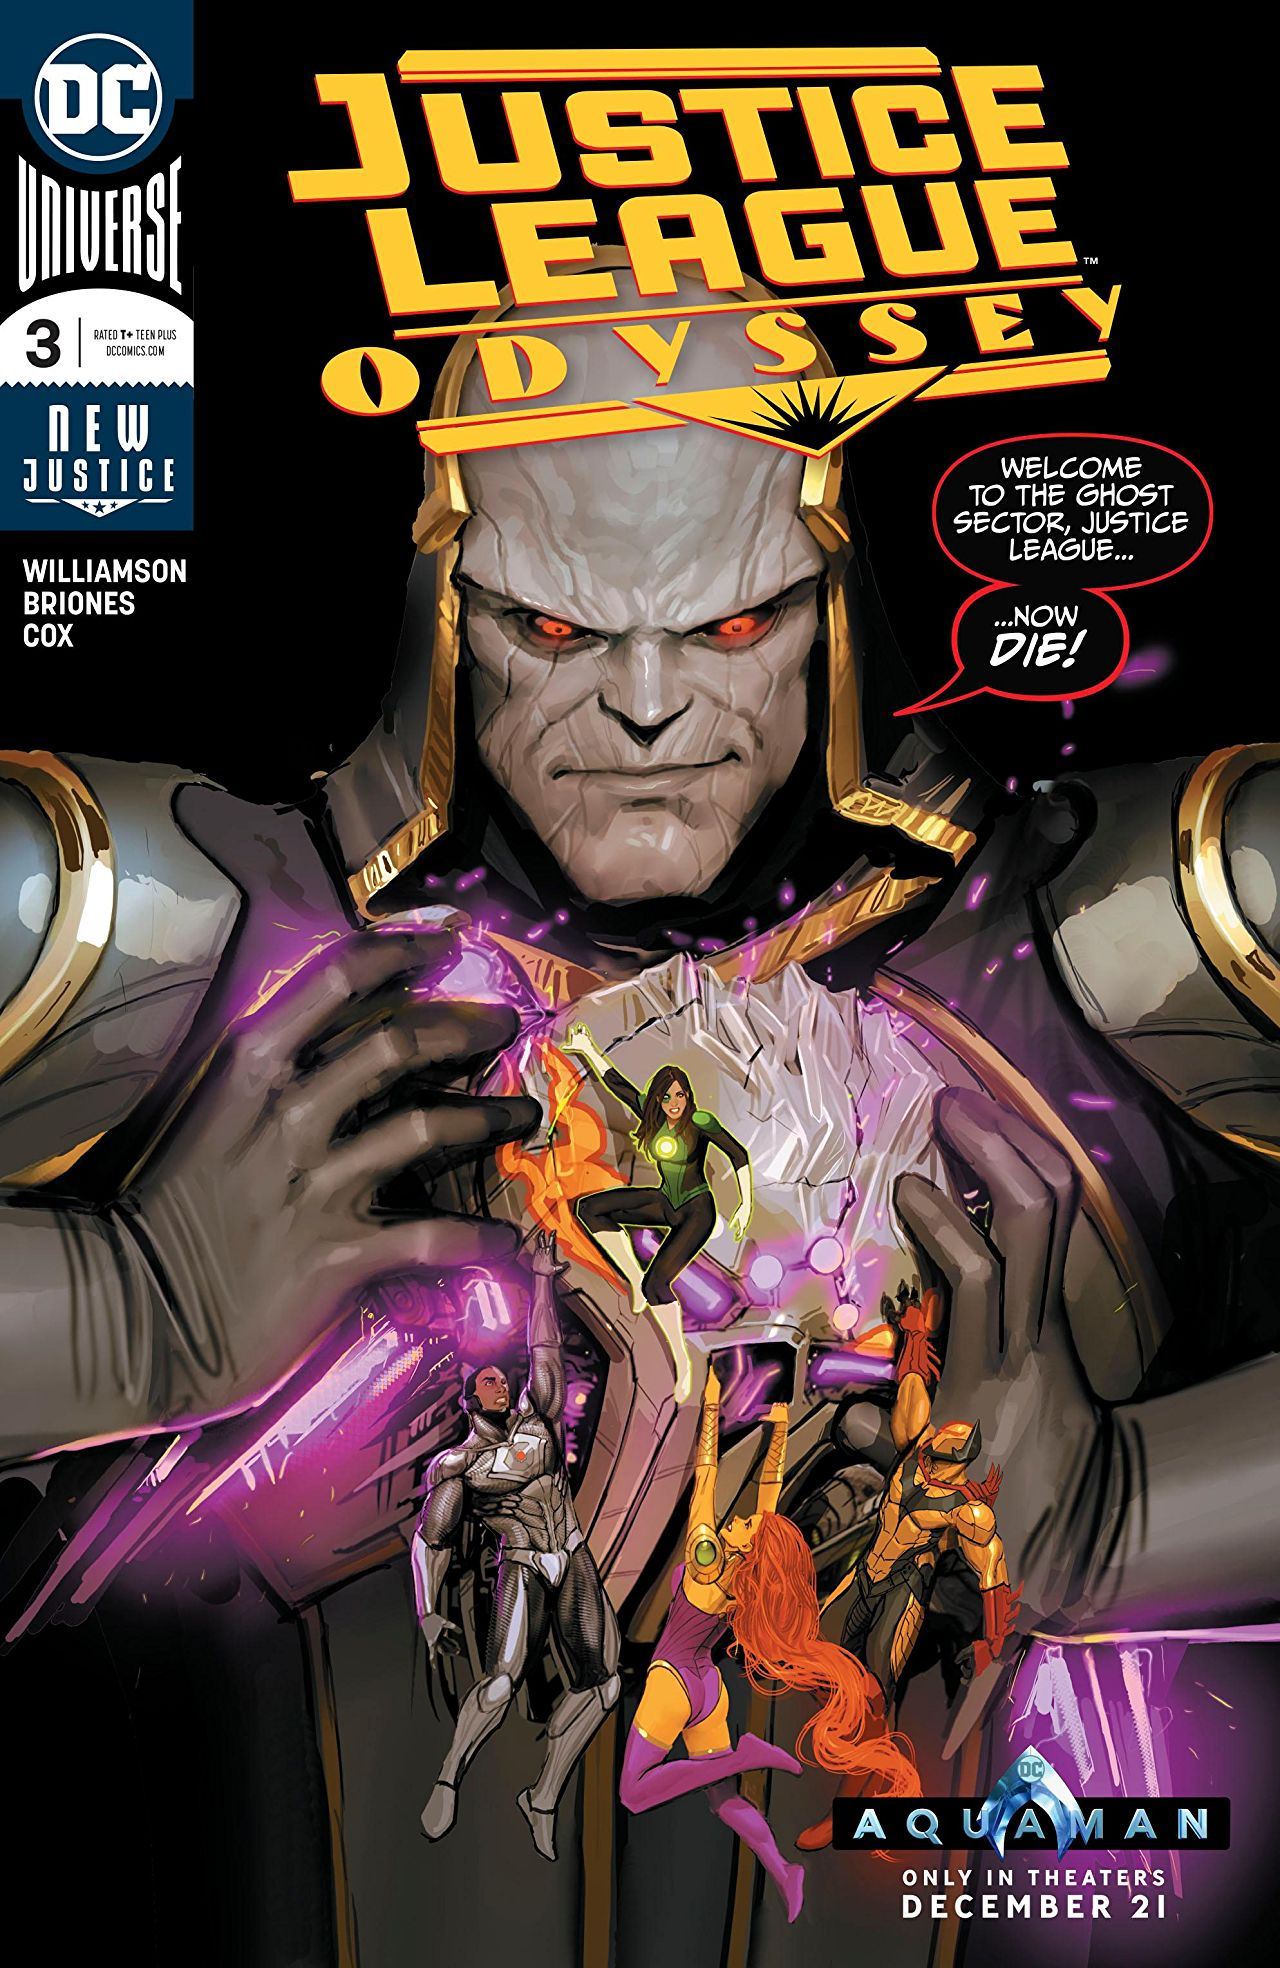 Justice League Odyssey #3 Review